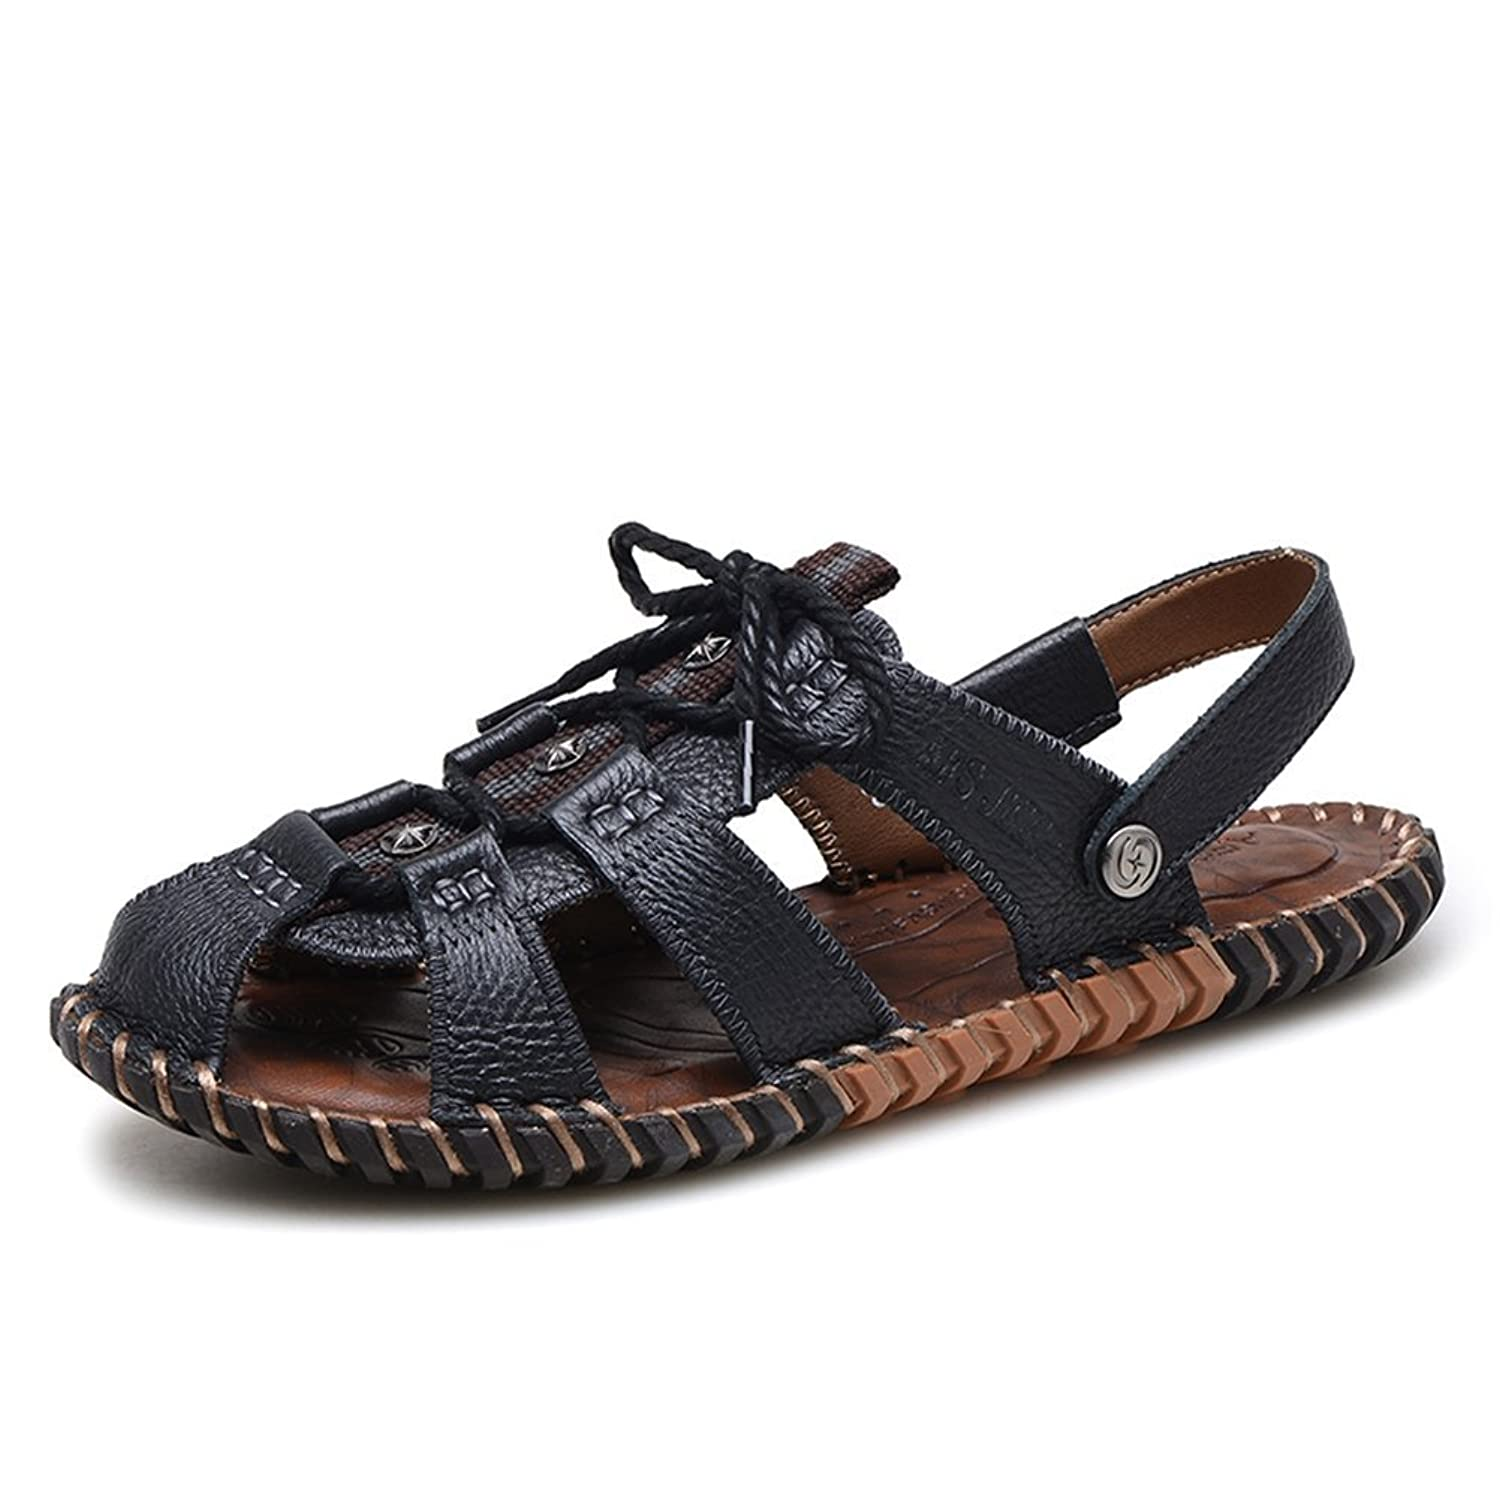 AFS JEEP Men's Summer Casual Outdoor Leather Fisherman Sandals Closed Toe Shoes